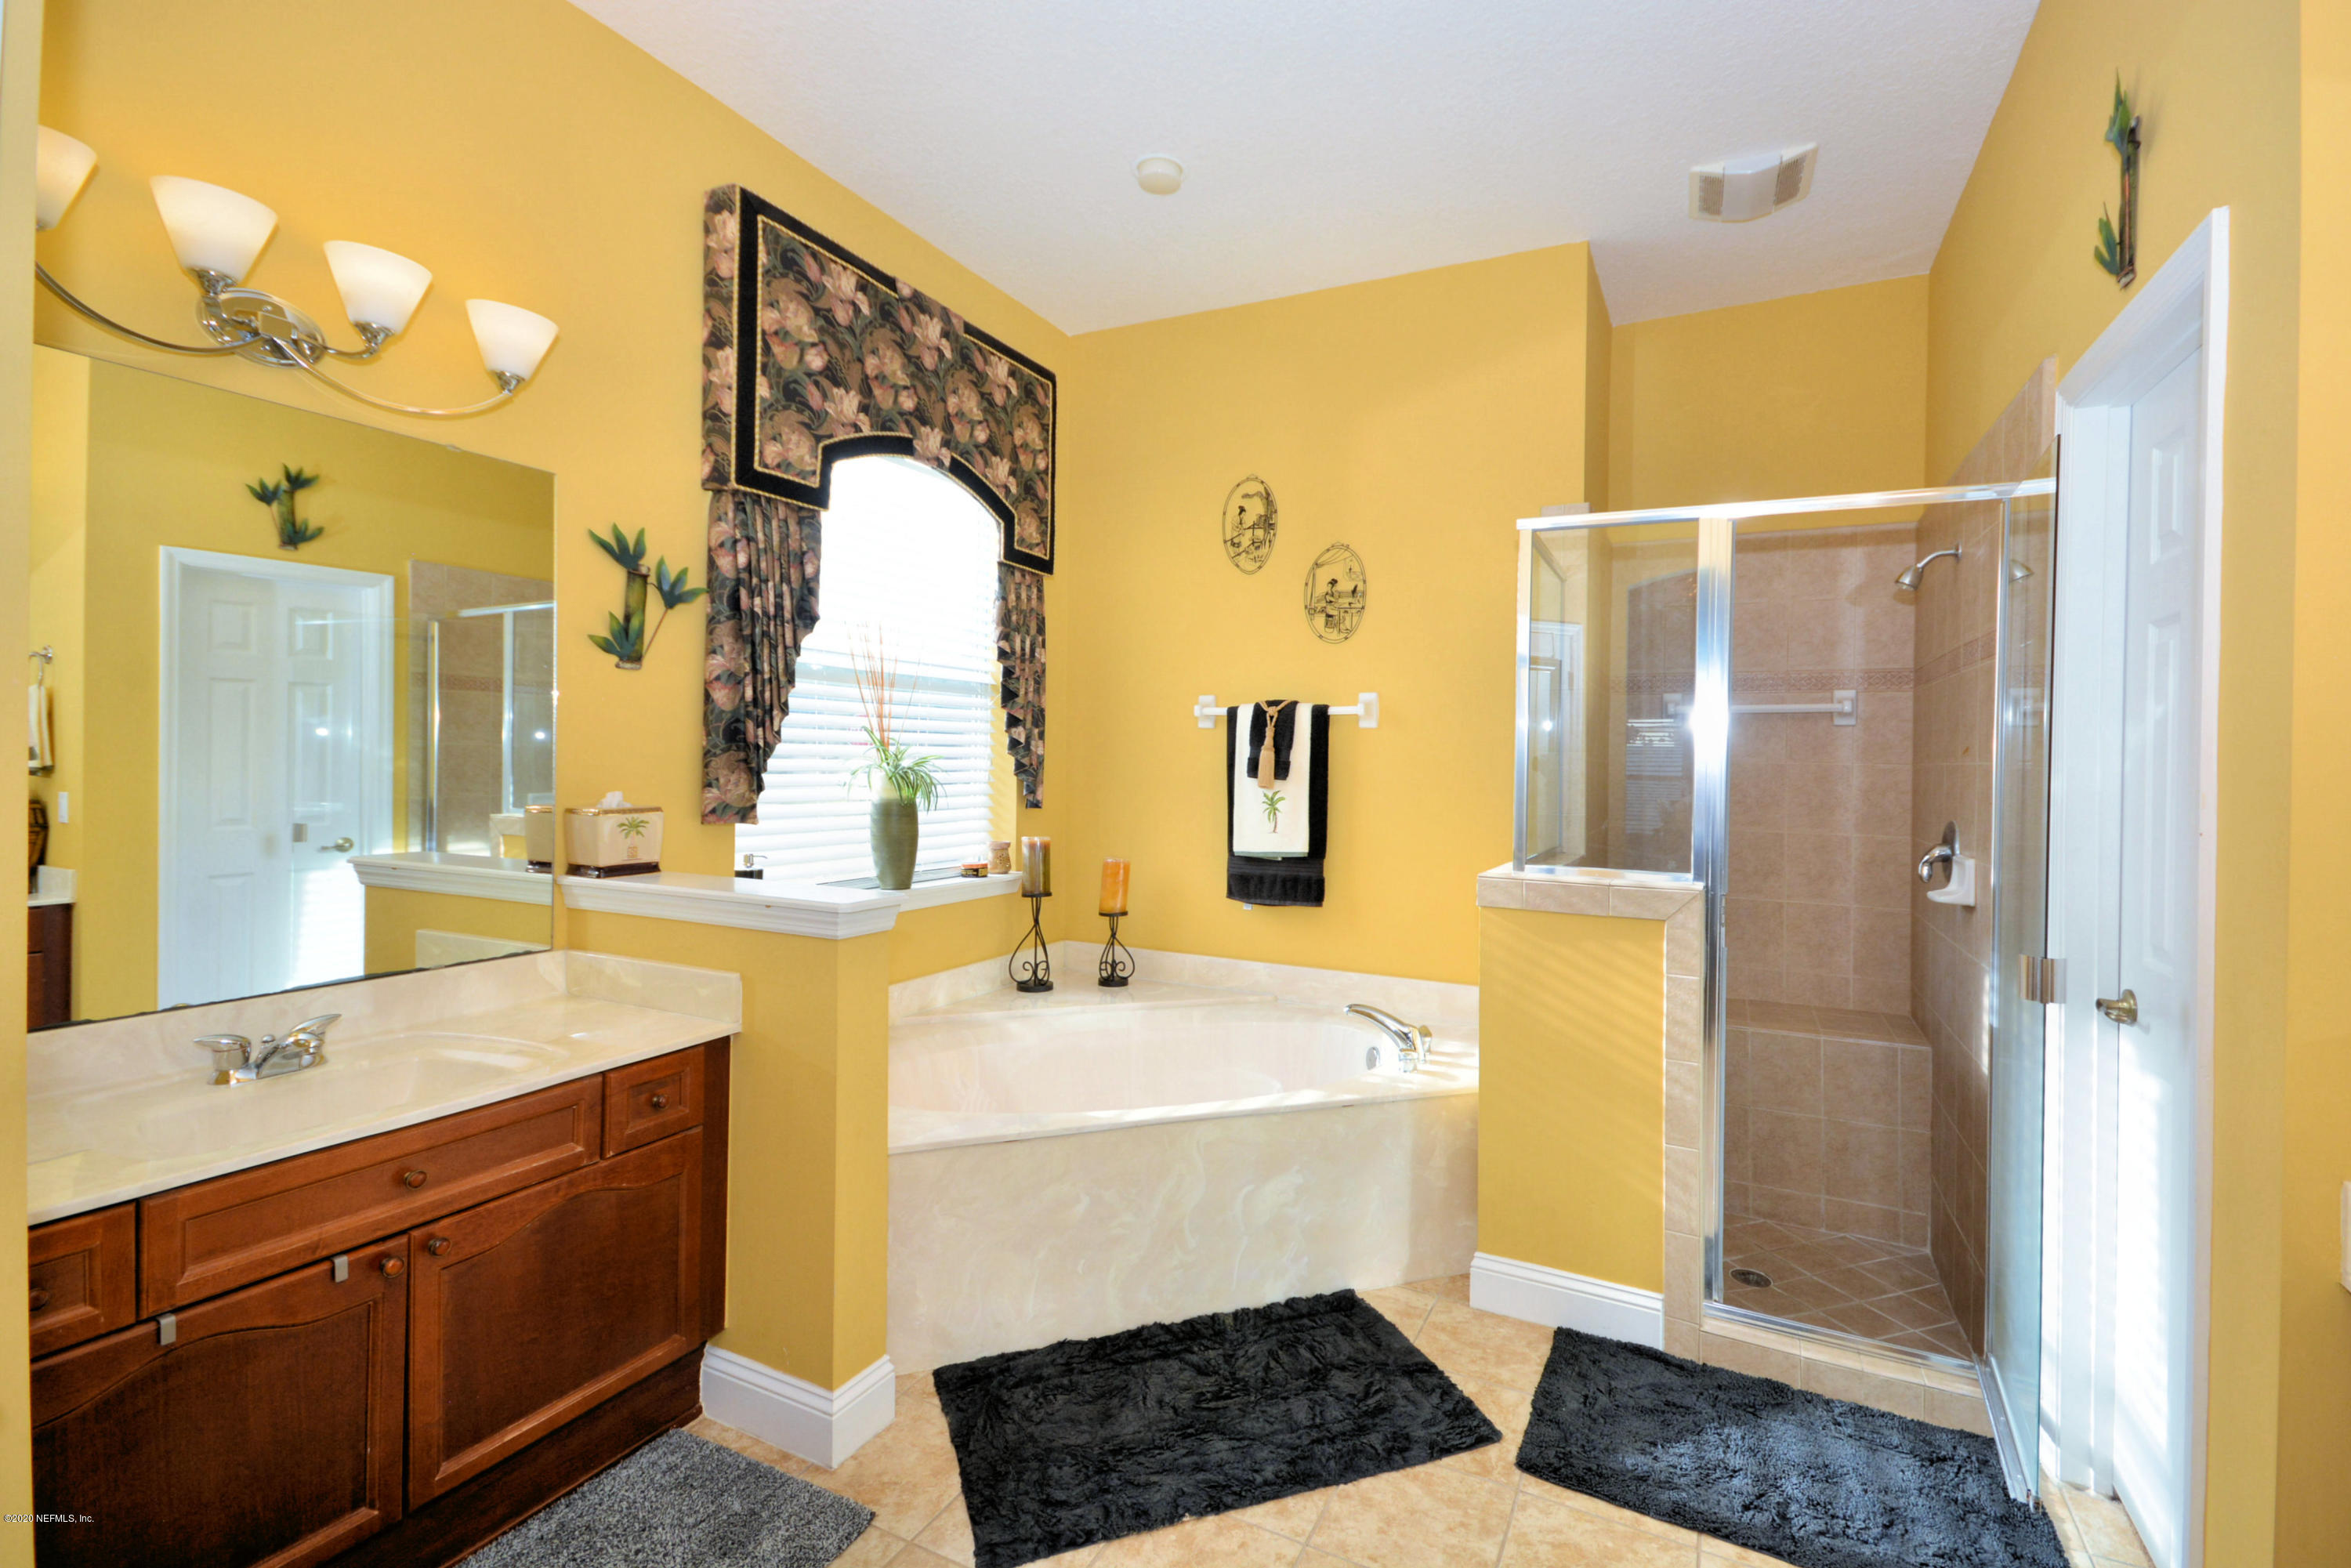 665 CHESTWOOD CHASE, ORANGE PARK, FLORIDA 32065, 4 Bedrooms Bedrooms, ,4 BathroomsBathrooms,Residential,For sale,CHESTWOOD CHASE,1057398